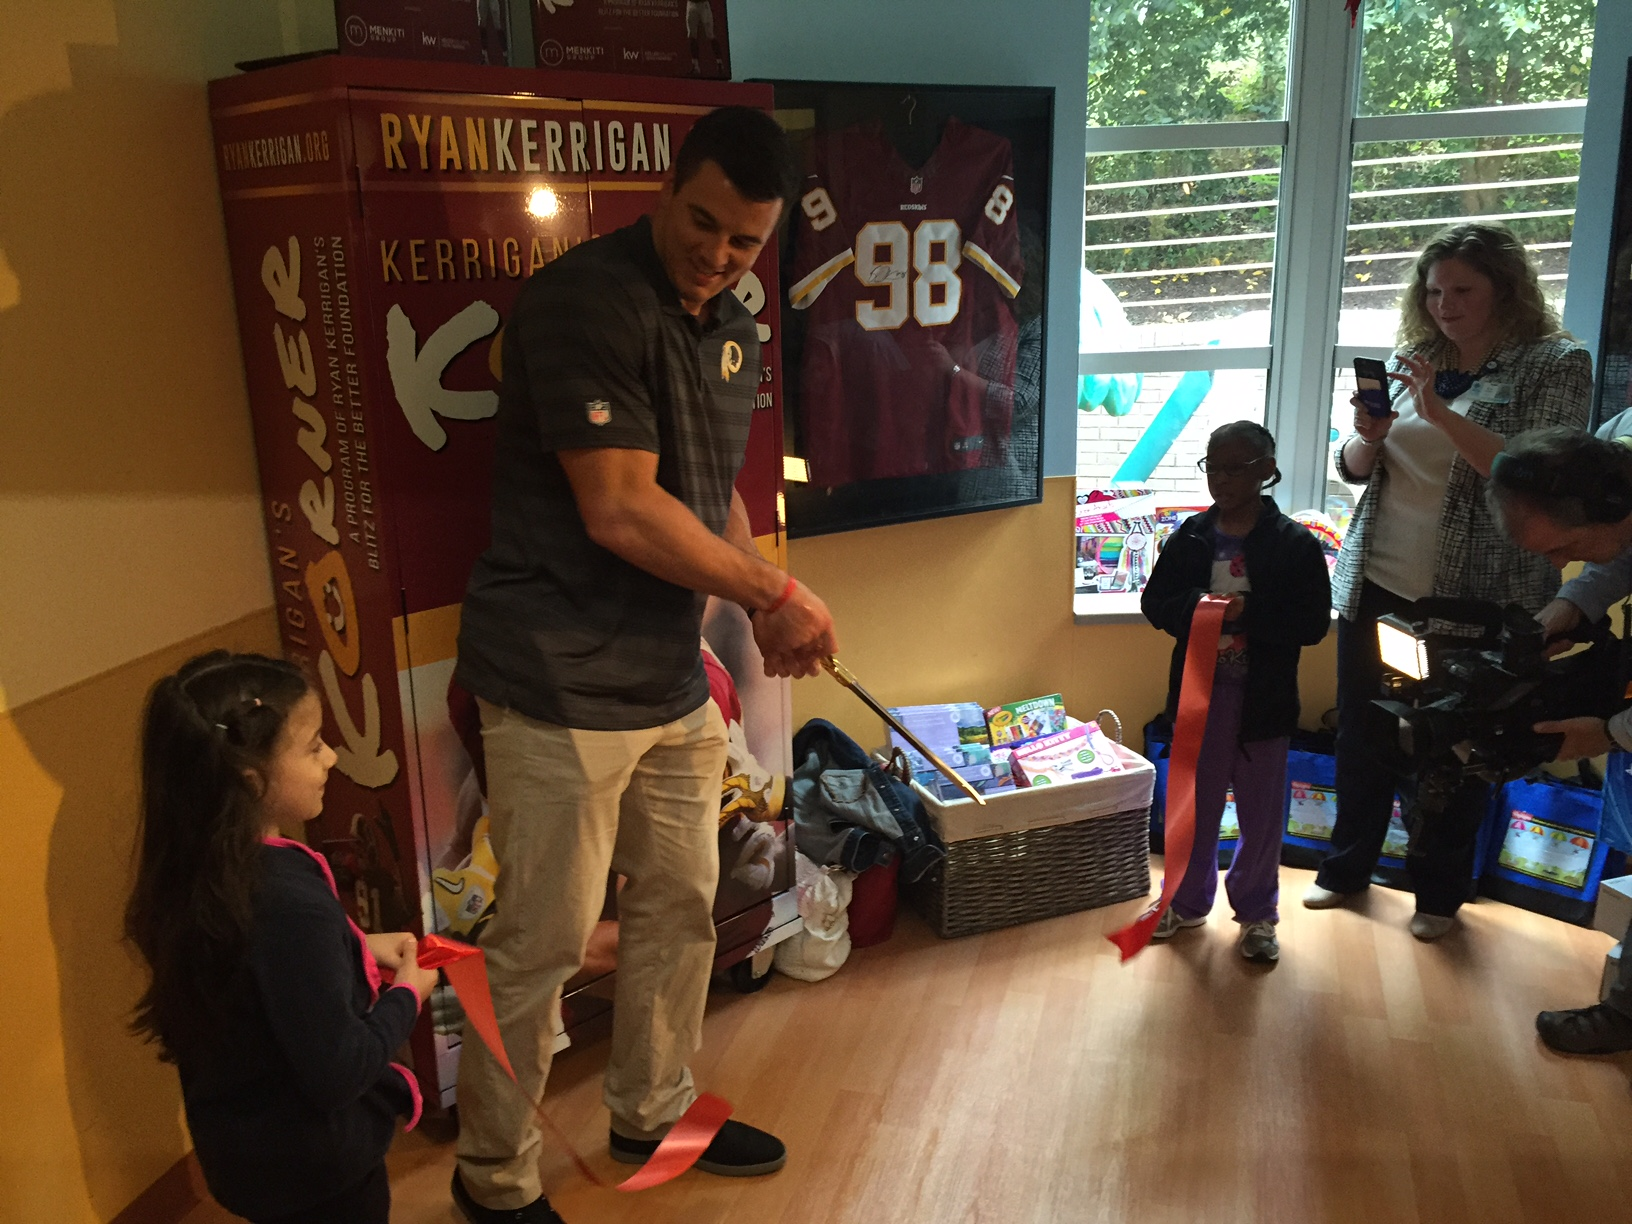 As he cut the ribbon on the opening of his third Kerrigan's Korner, the Redskins player said days like this are rewarding to him. (WTOP/Megan Cloherty)